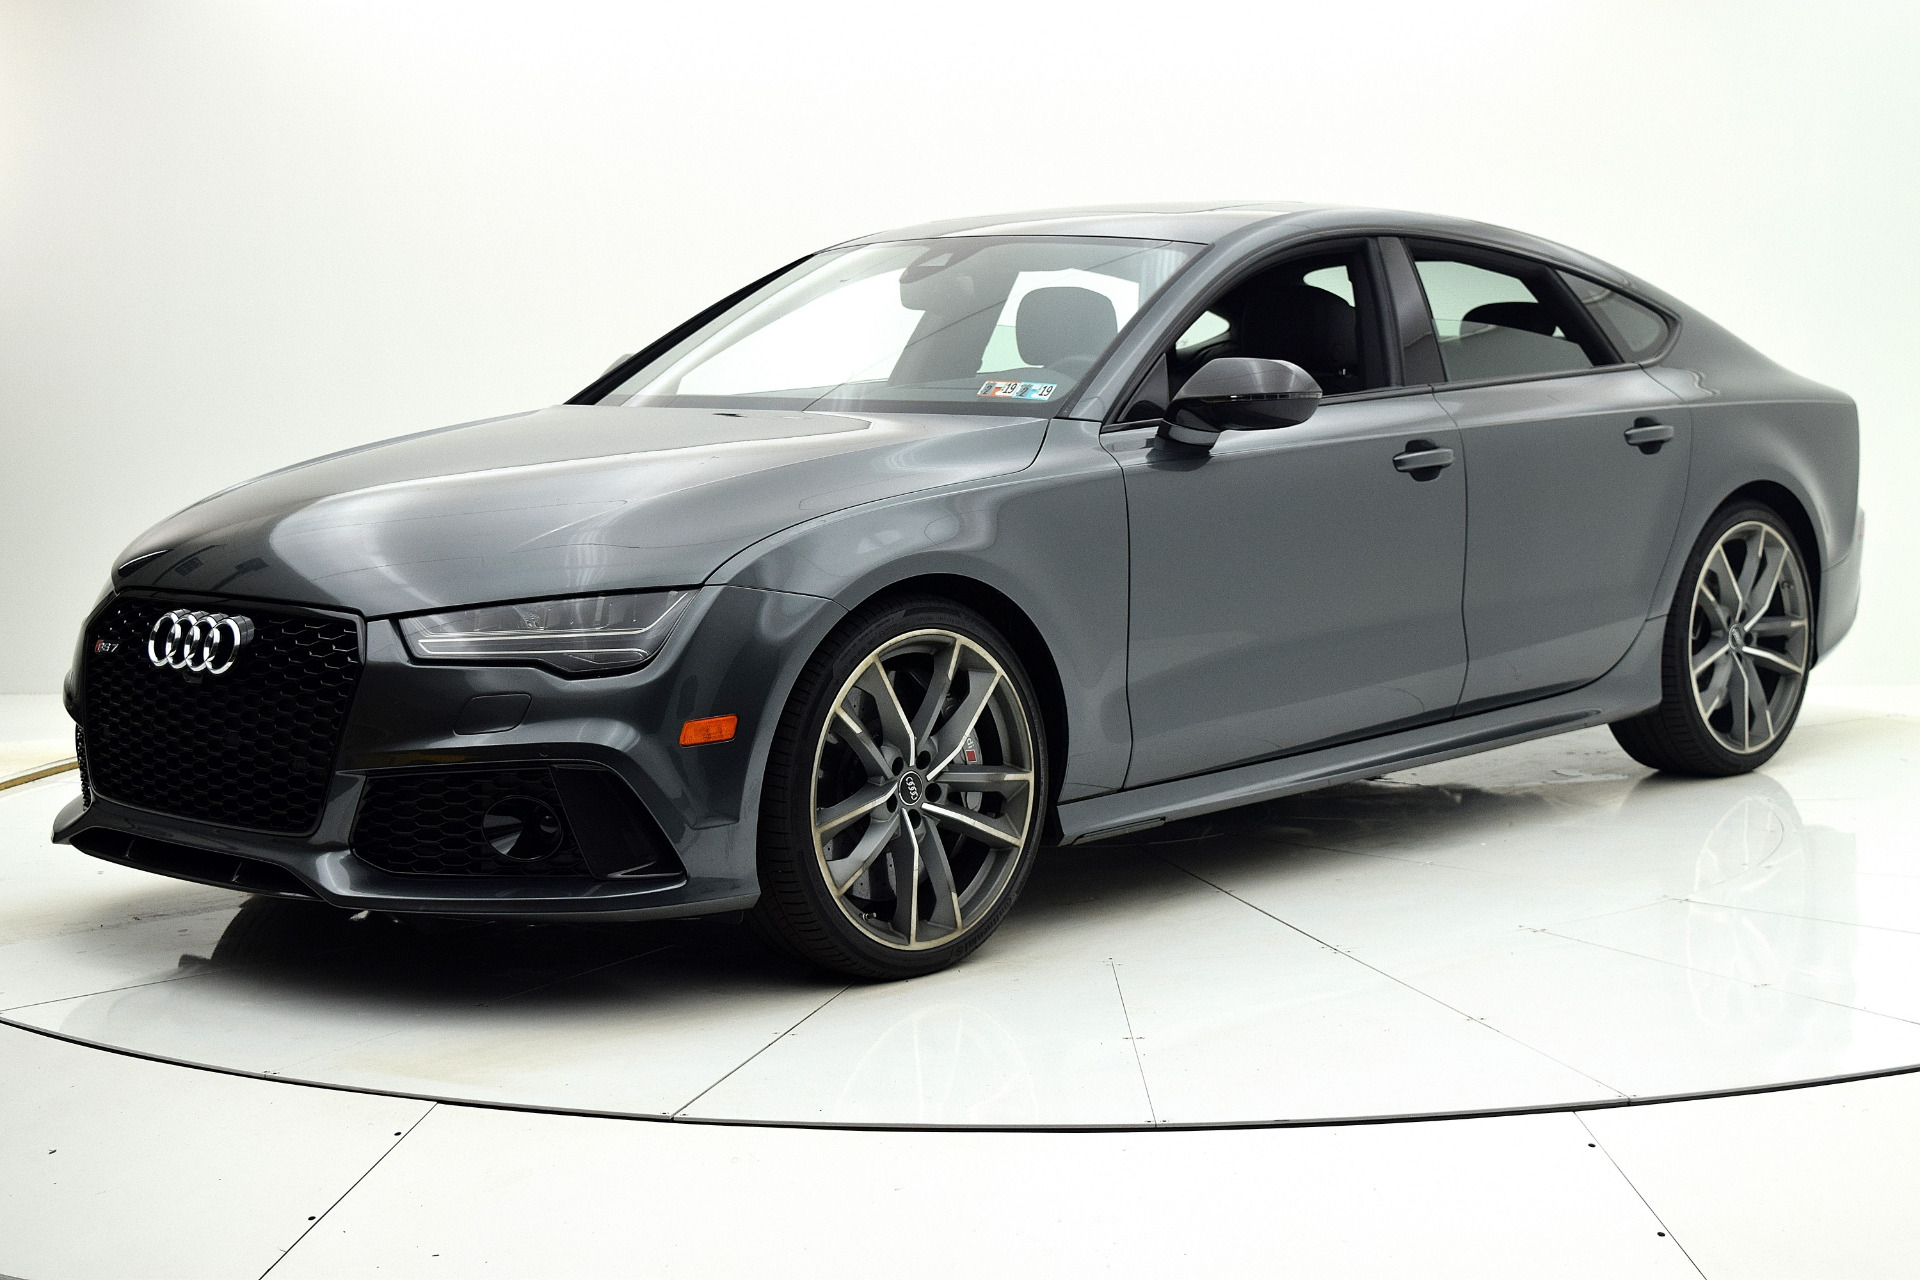 Audi RS 7 2017 For Sale $92880 Stock Number 18BE114AEB